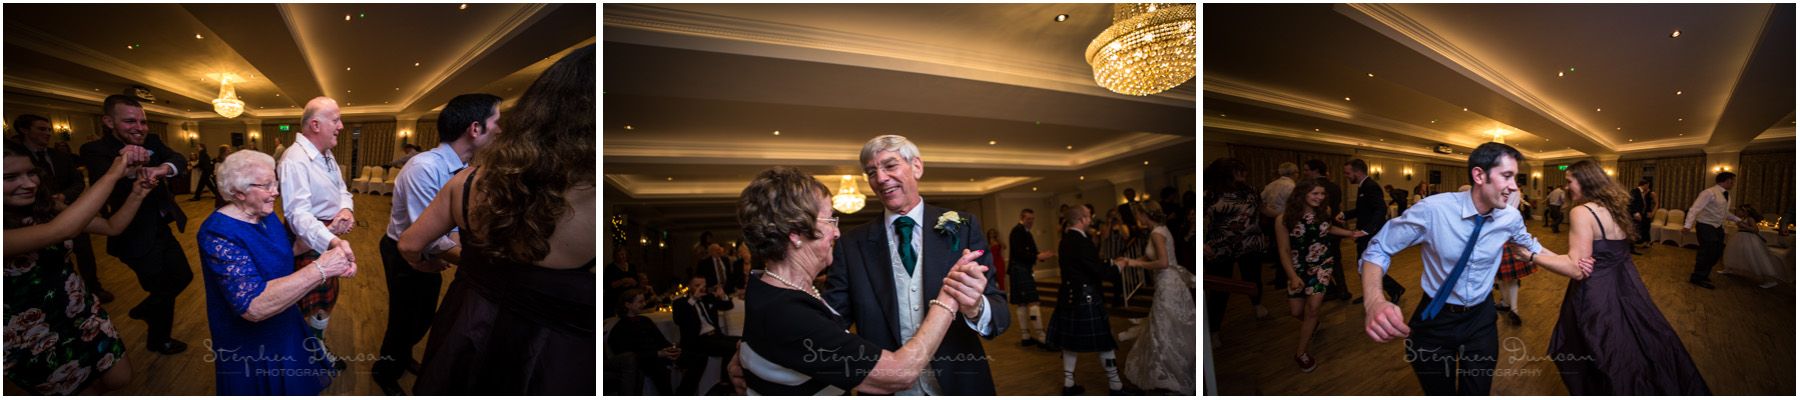 Romsey Abbey wedding photographer guests dancing at ceilidh